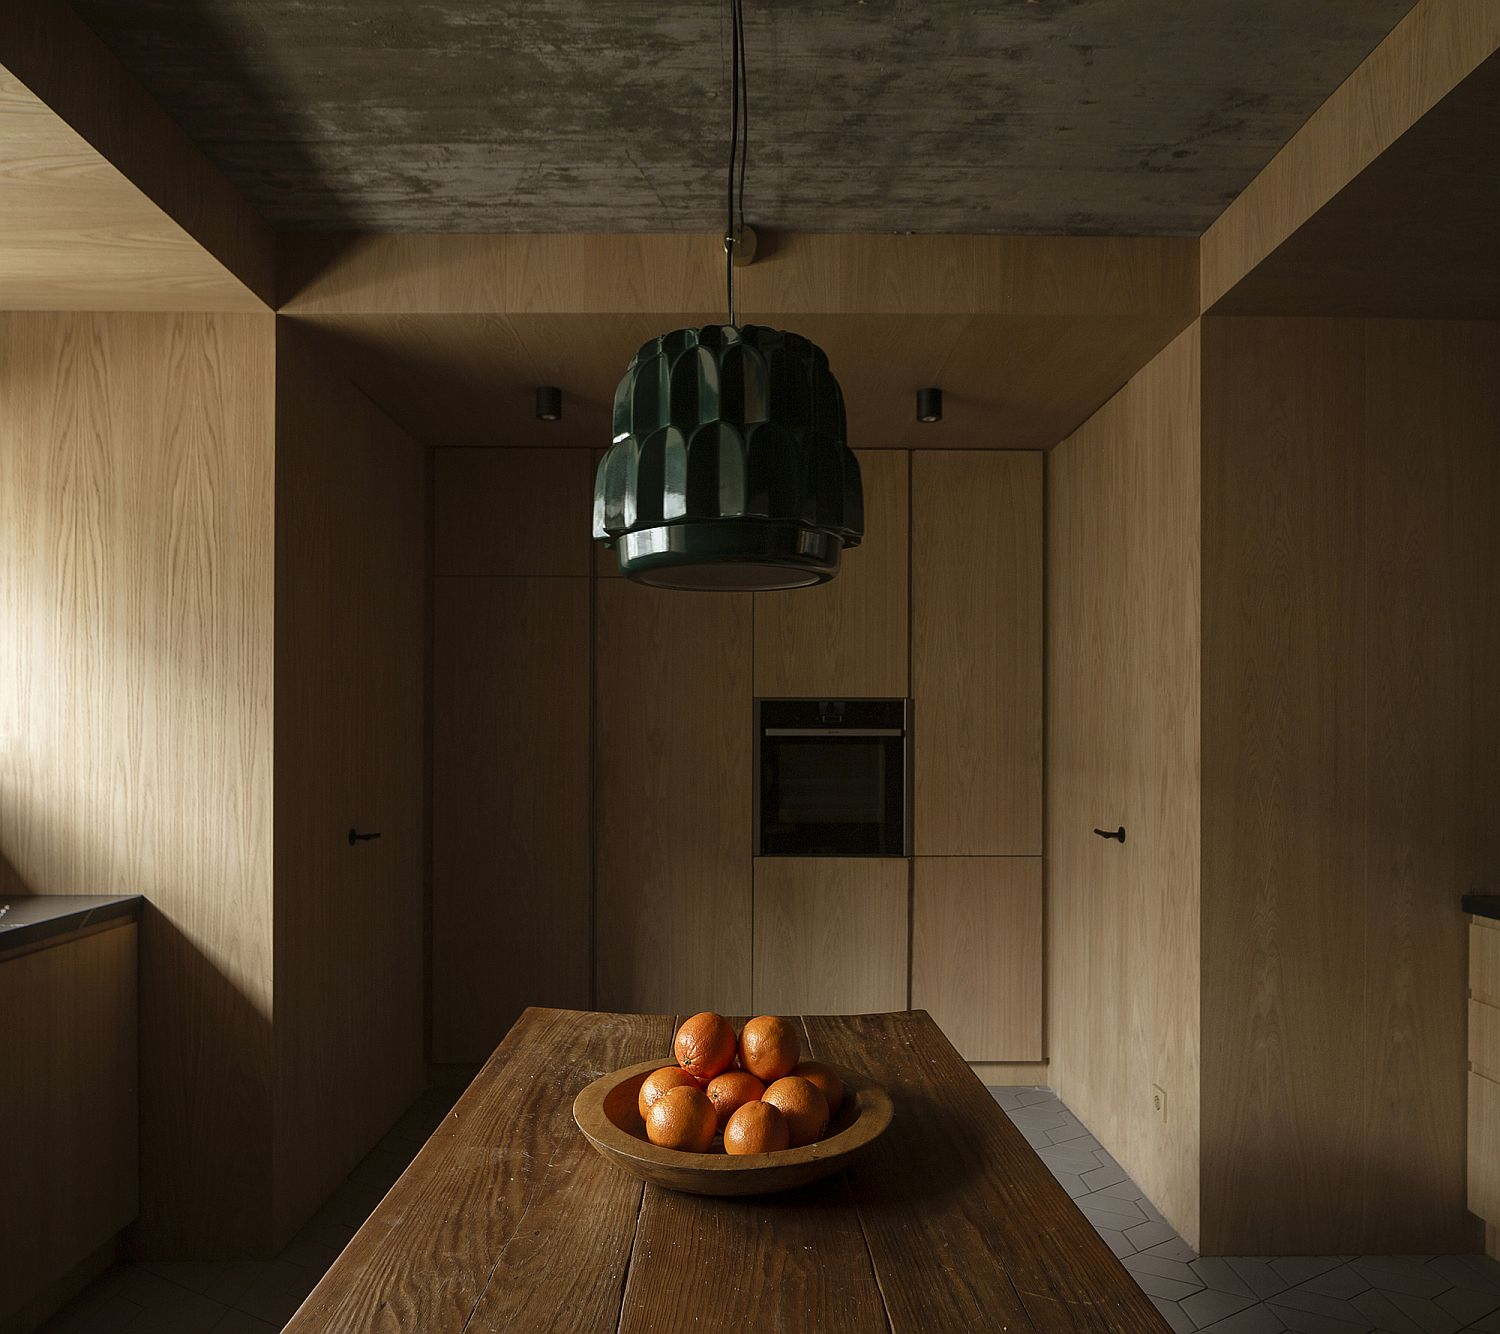 Warm and cozy wooden walls for the kitchen with transitional style